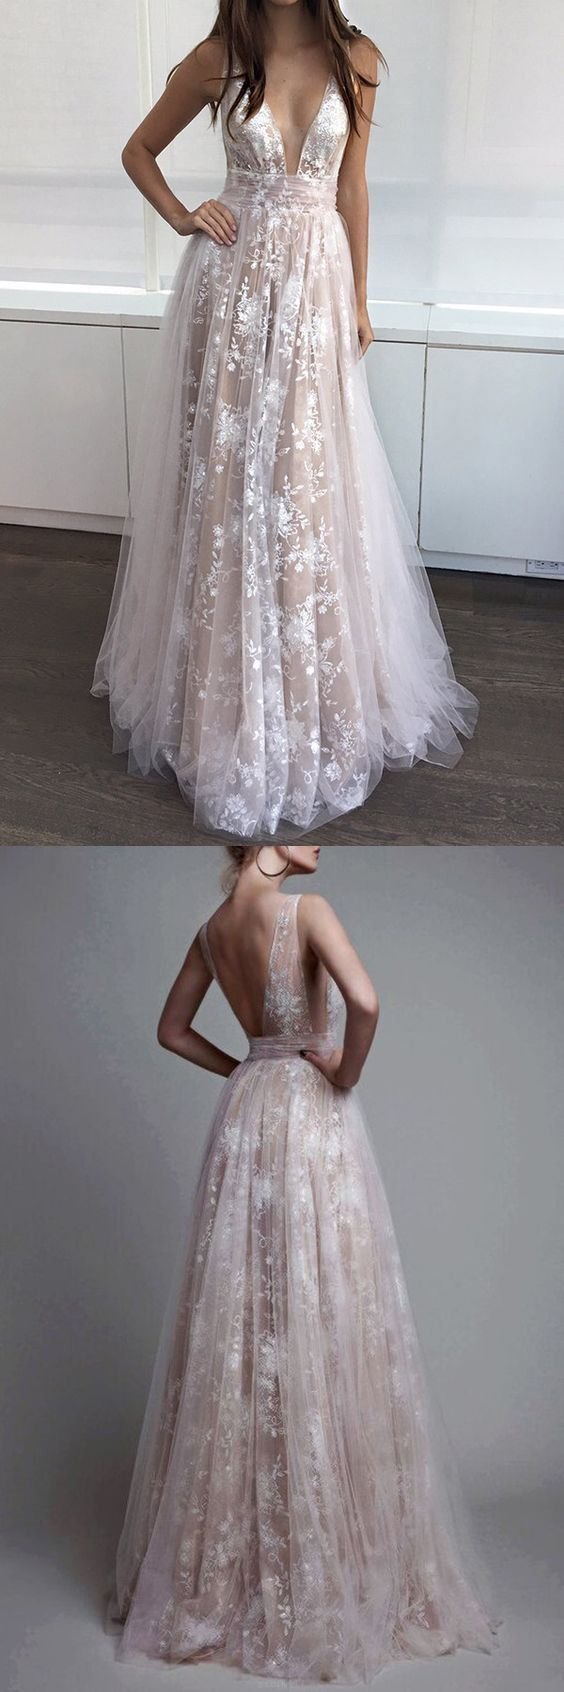 What to wear over a sleeveless dress to a wedding  Customized Sleeveless Dresses Long Champagne Evening Prom Dresses